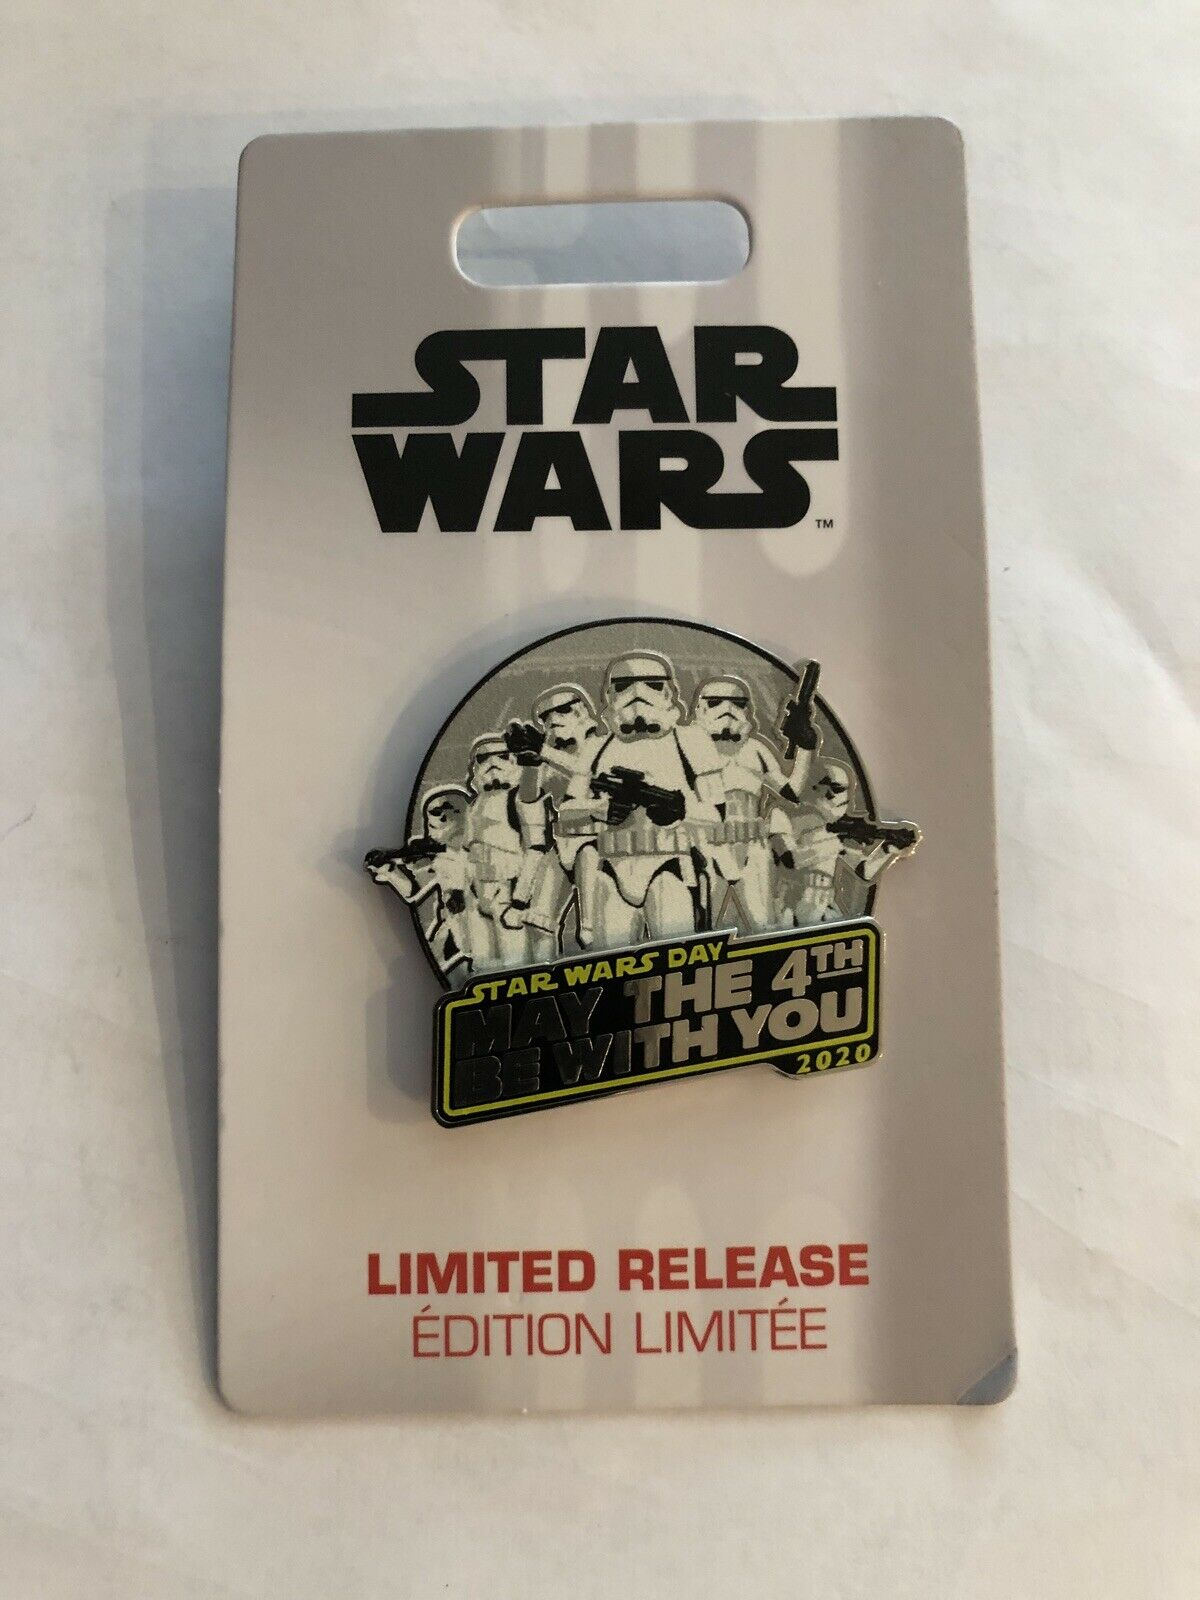 Star Wars Day - May the 4th be with you 2020 Disney Pin 465055458112